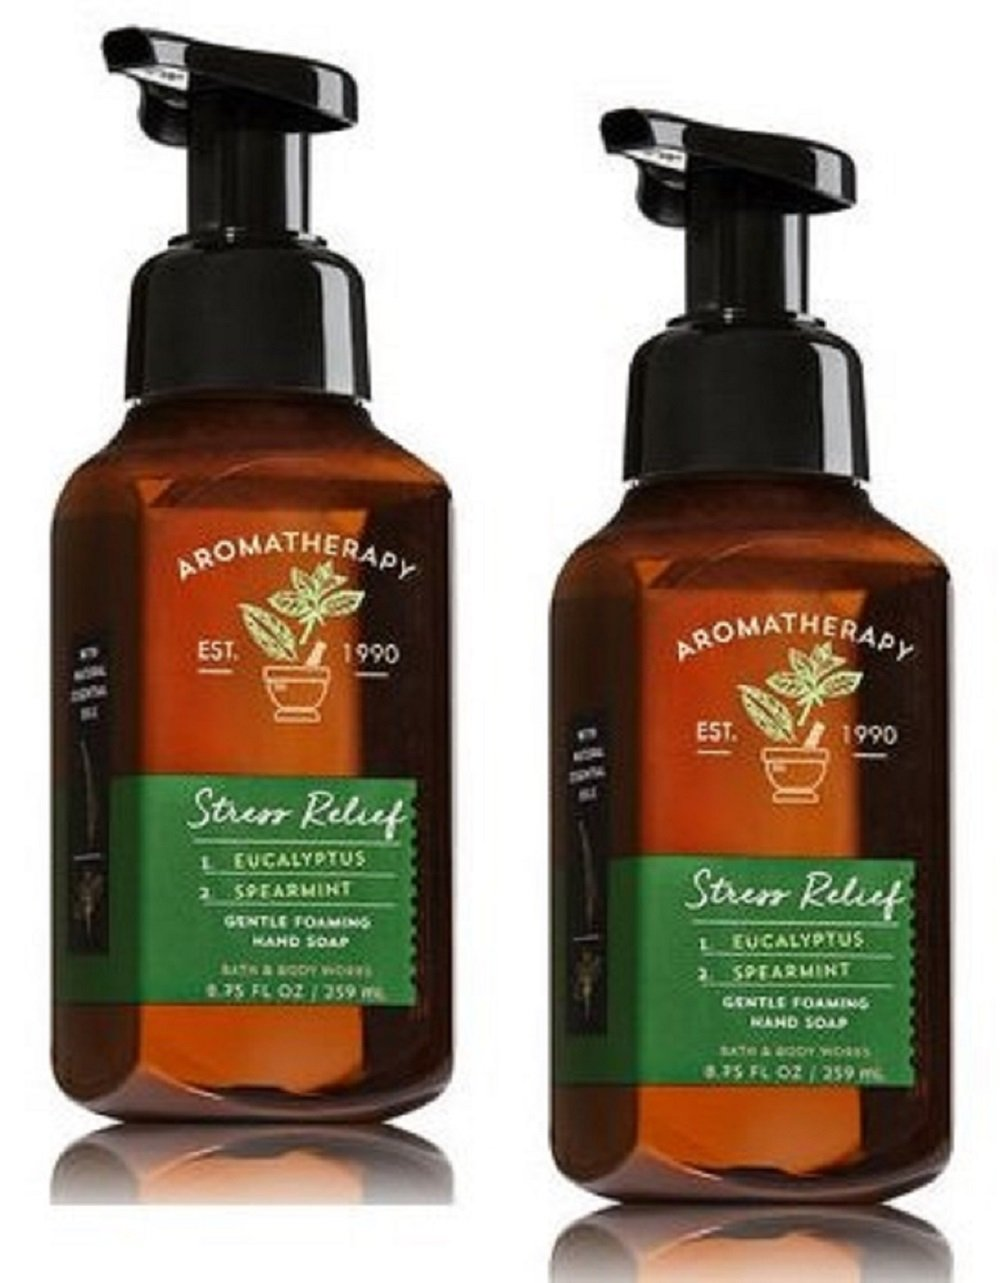 Bath and Body Works 2 Pack Aromatherapy Stress Relief Eucalyptus & Spearmint Gentle Foaming Hand Soap 8.75 Oz